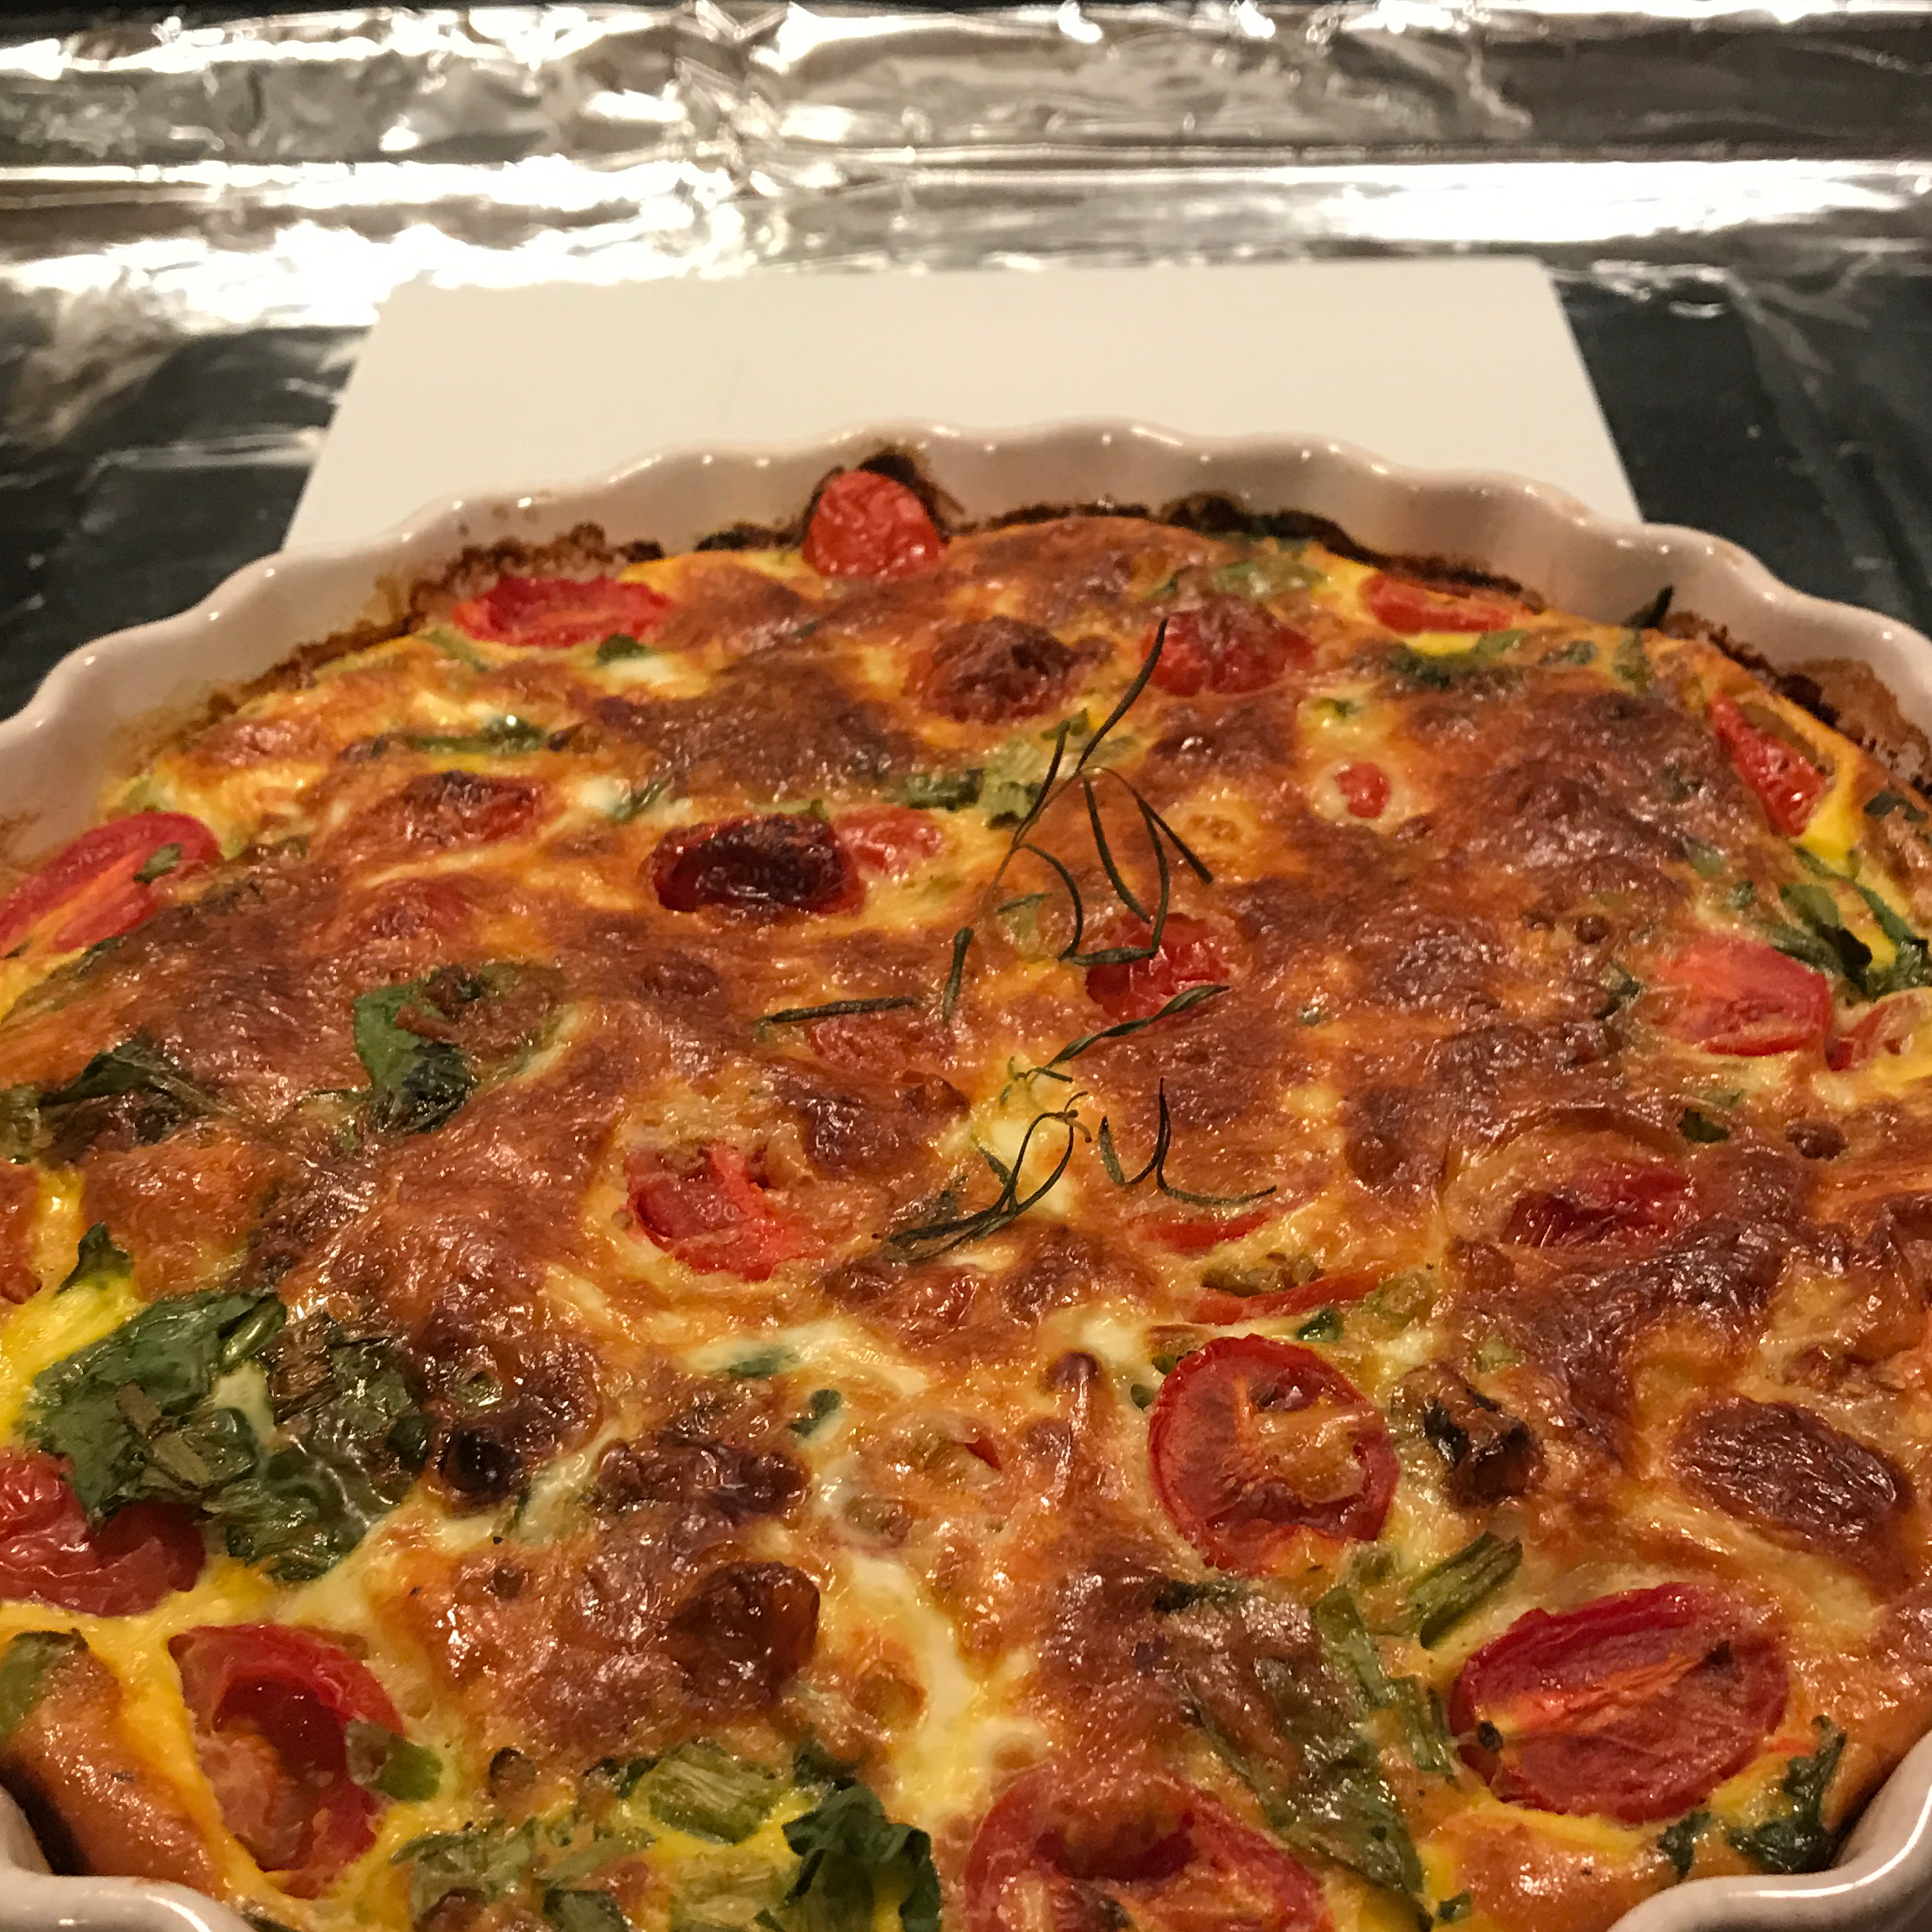 Quiche with Kale, Tomato, and Leek